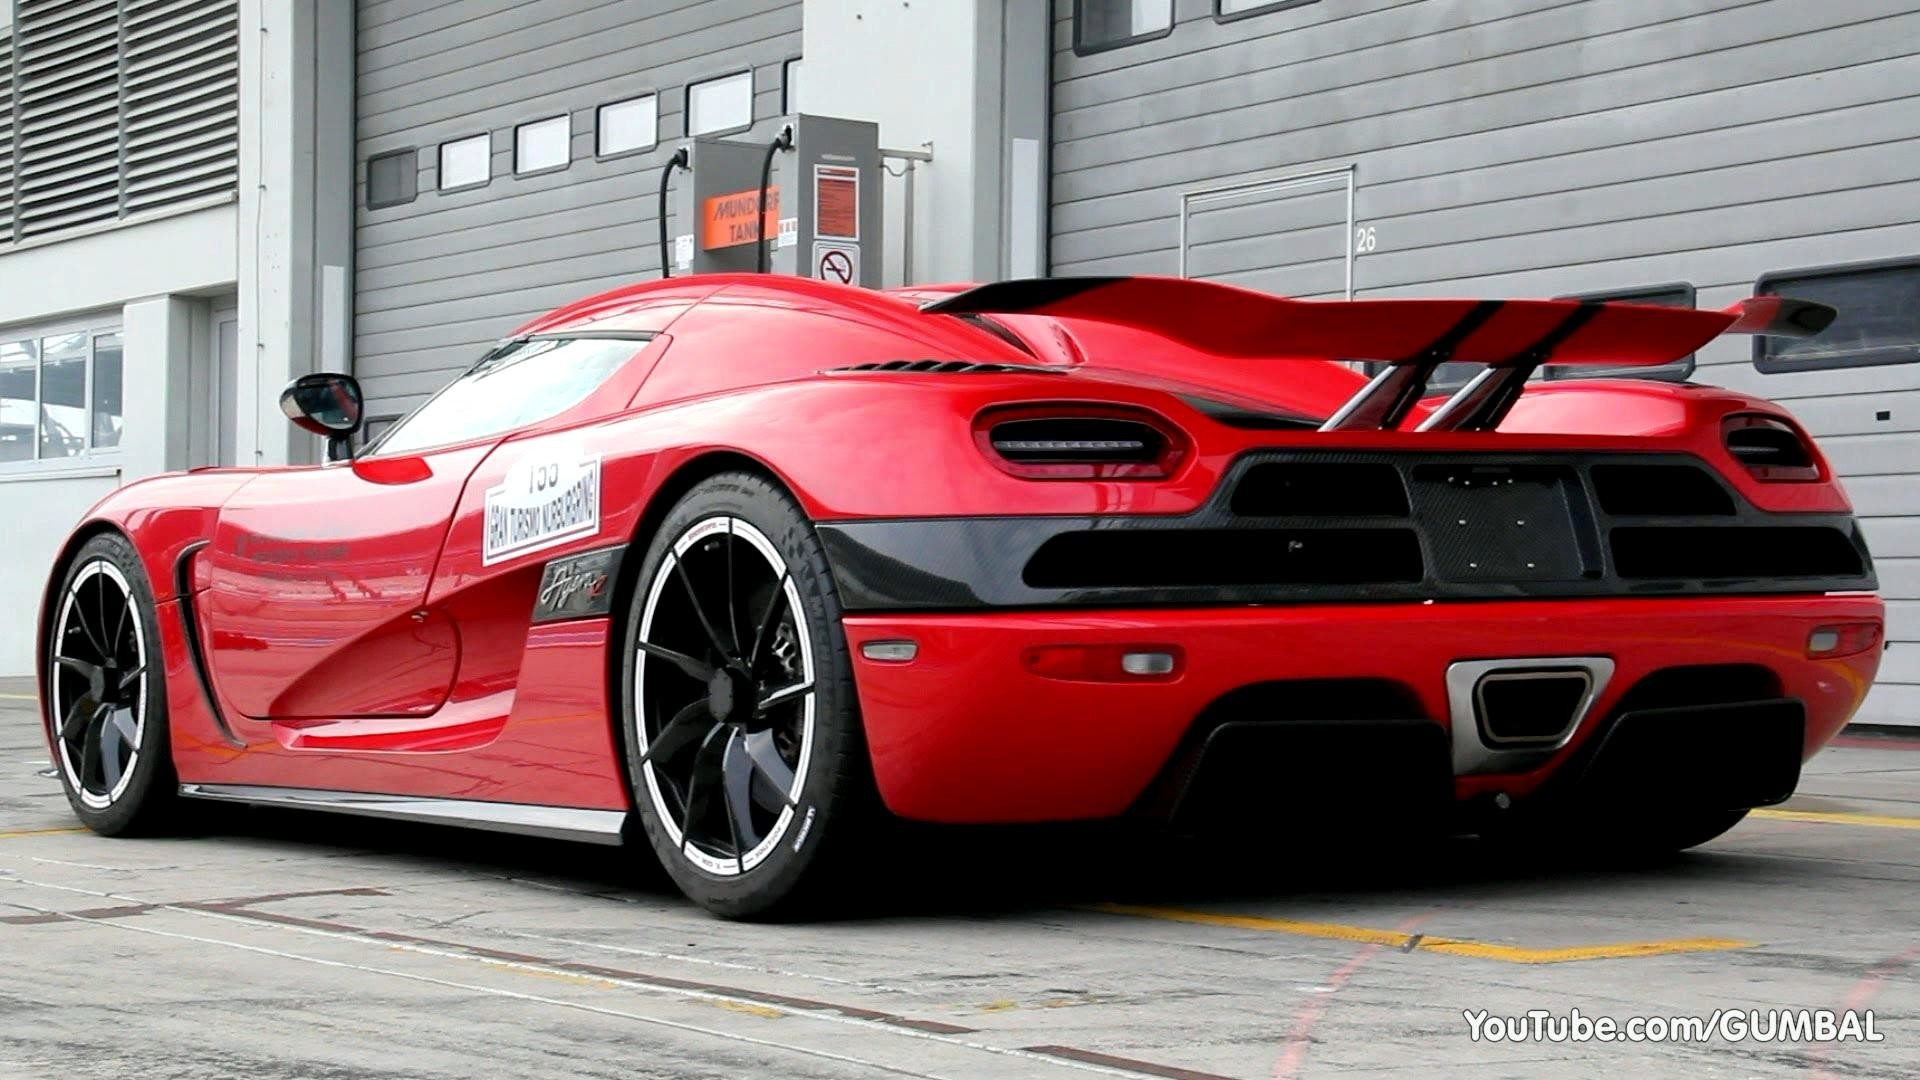 Koenigsegg Agera R wallpapers for iphone